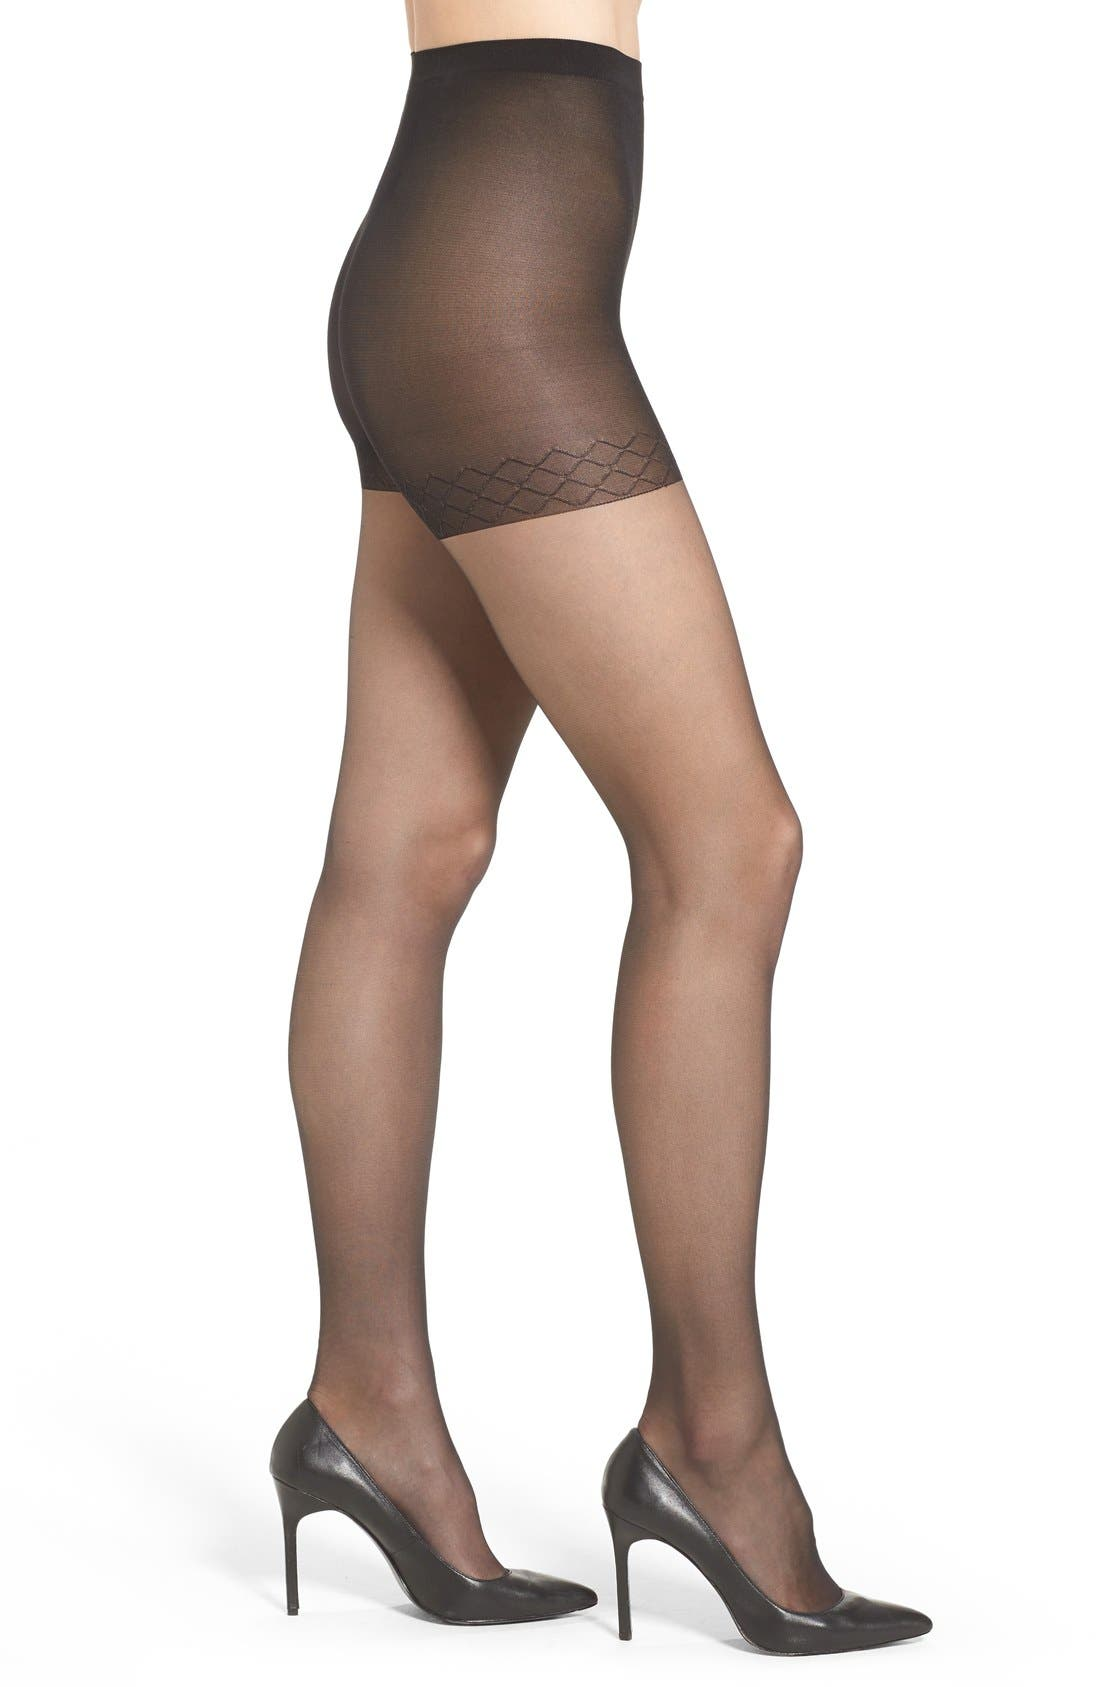 Alternate Image 1 Selected - Nordstrom Sheer Control Top Pantyhose